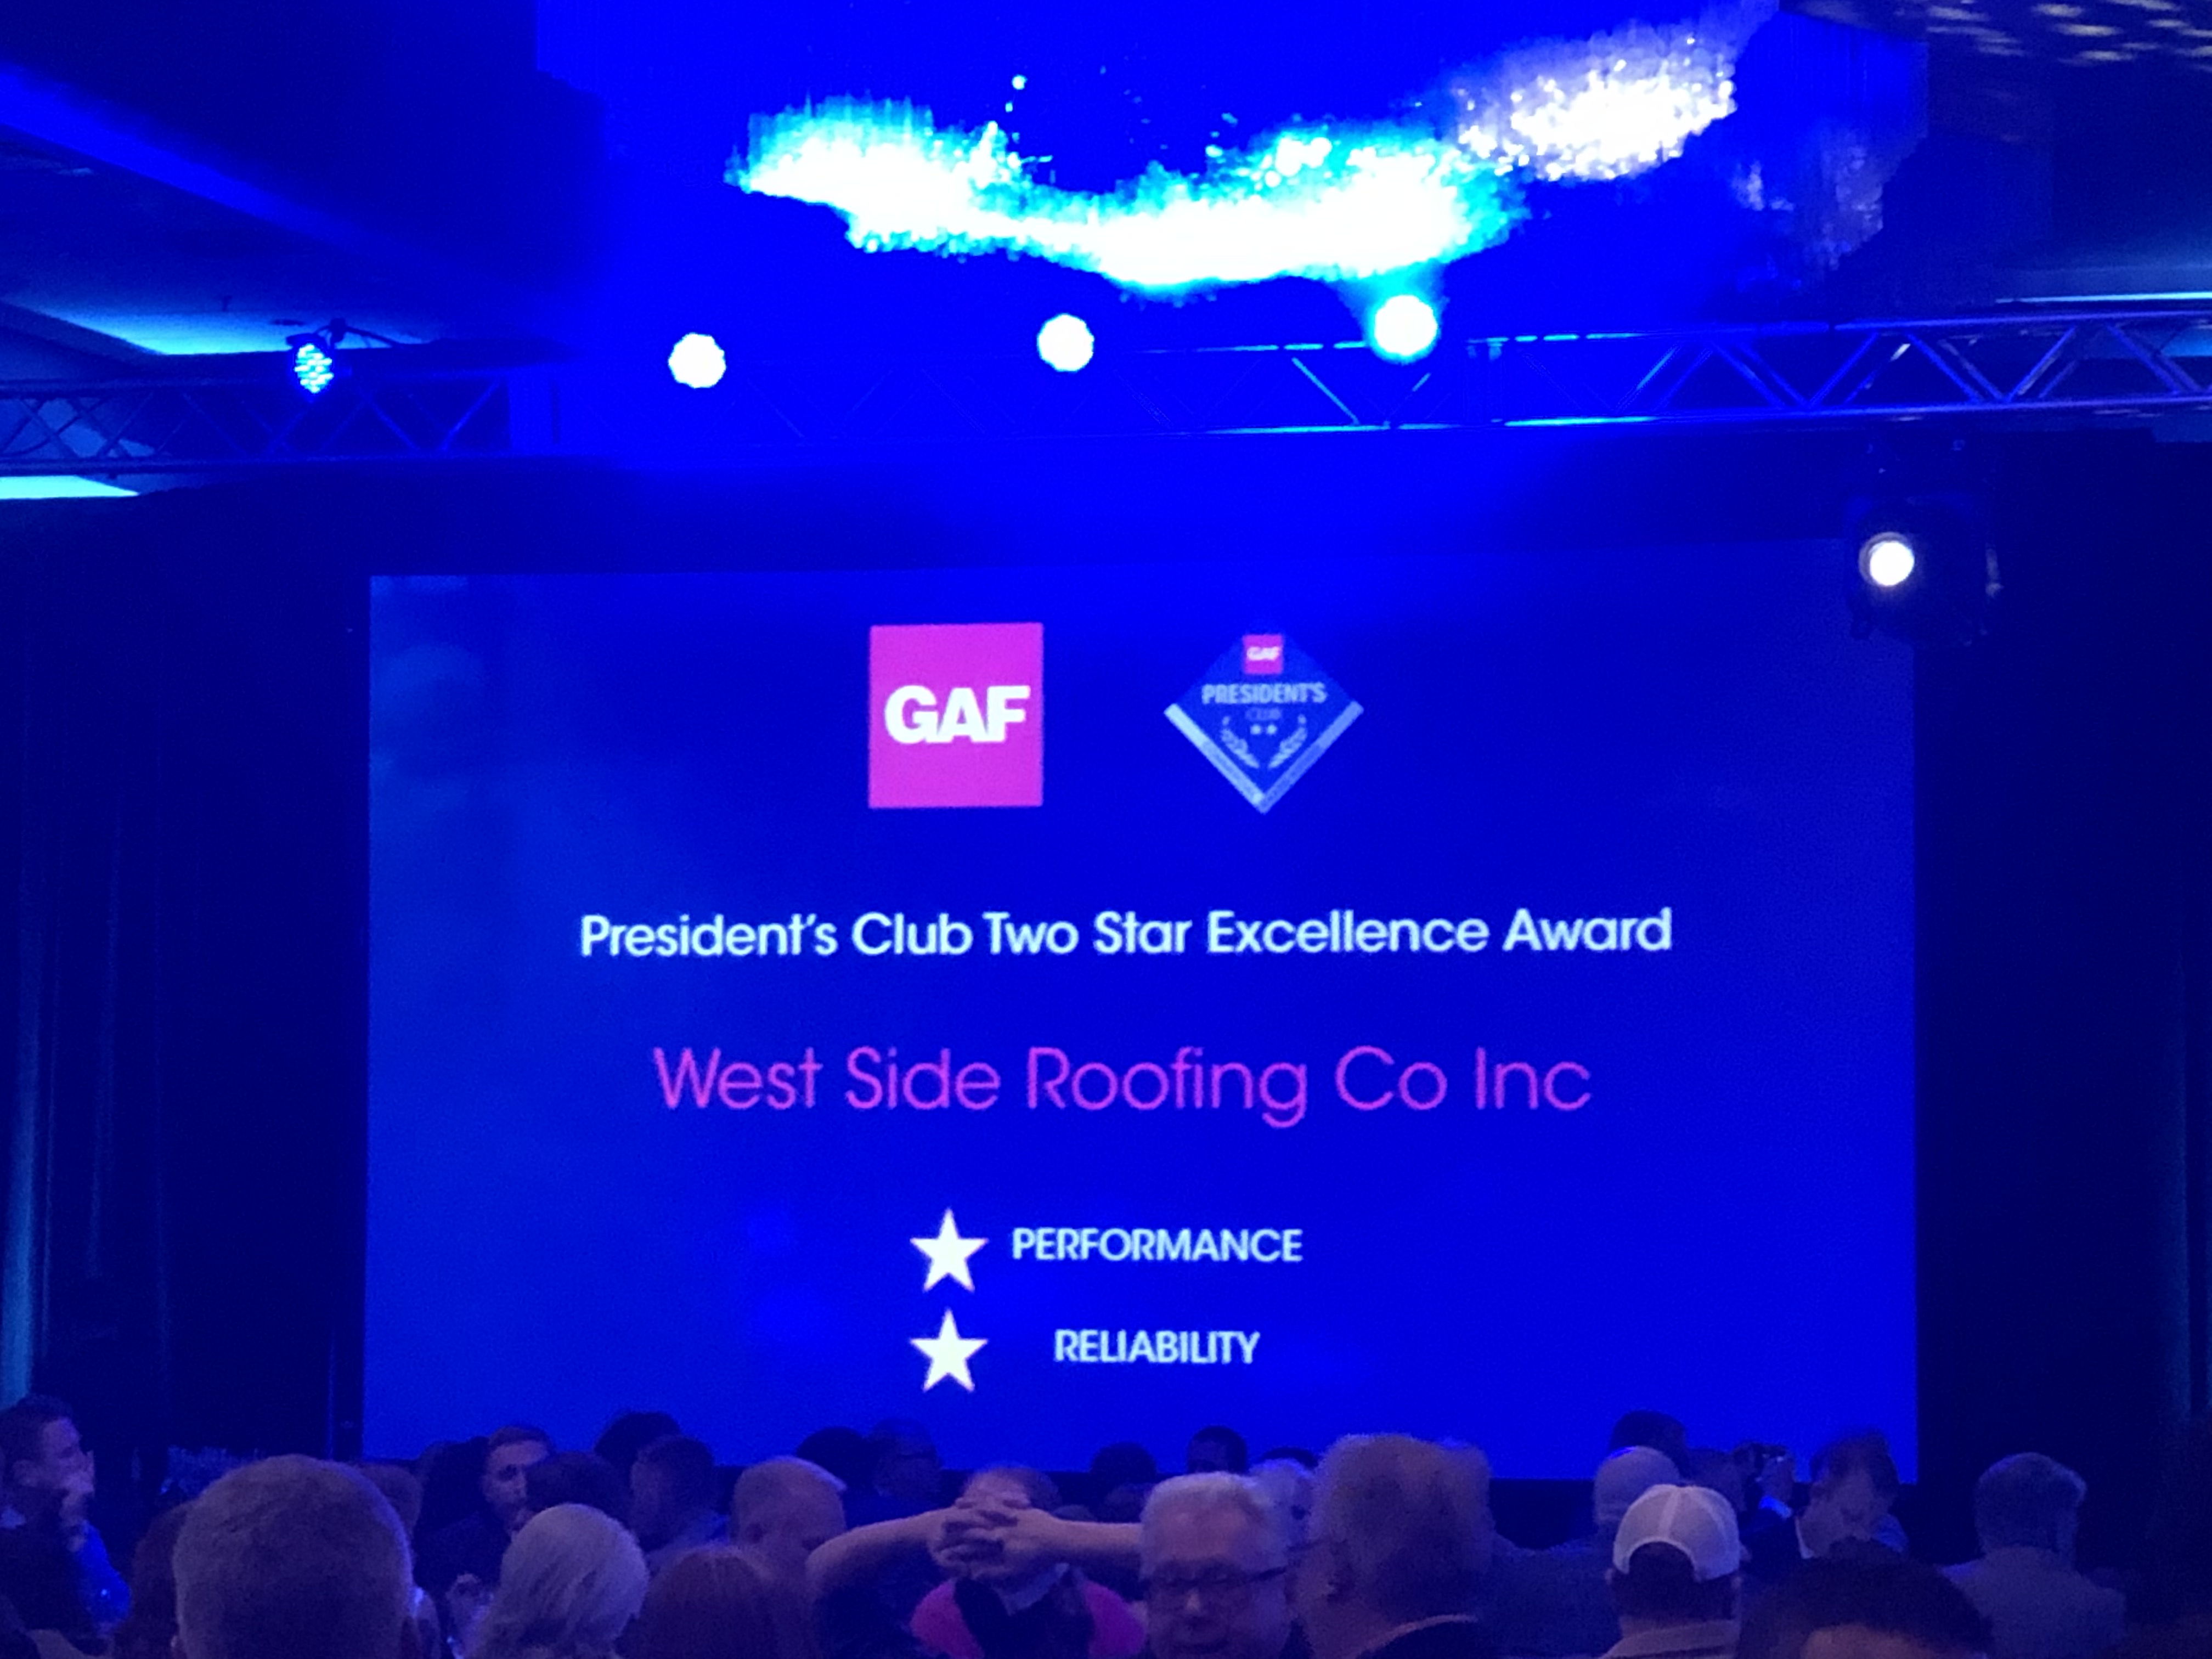 West Side Roofing was awarded the GAF President Club